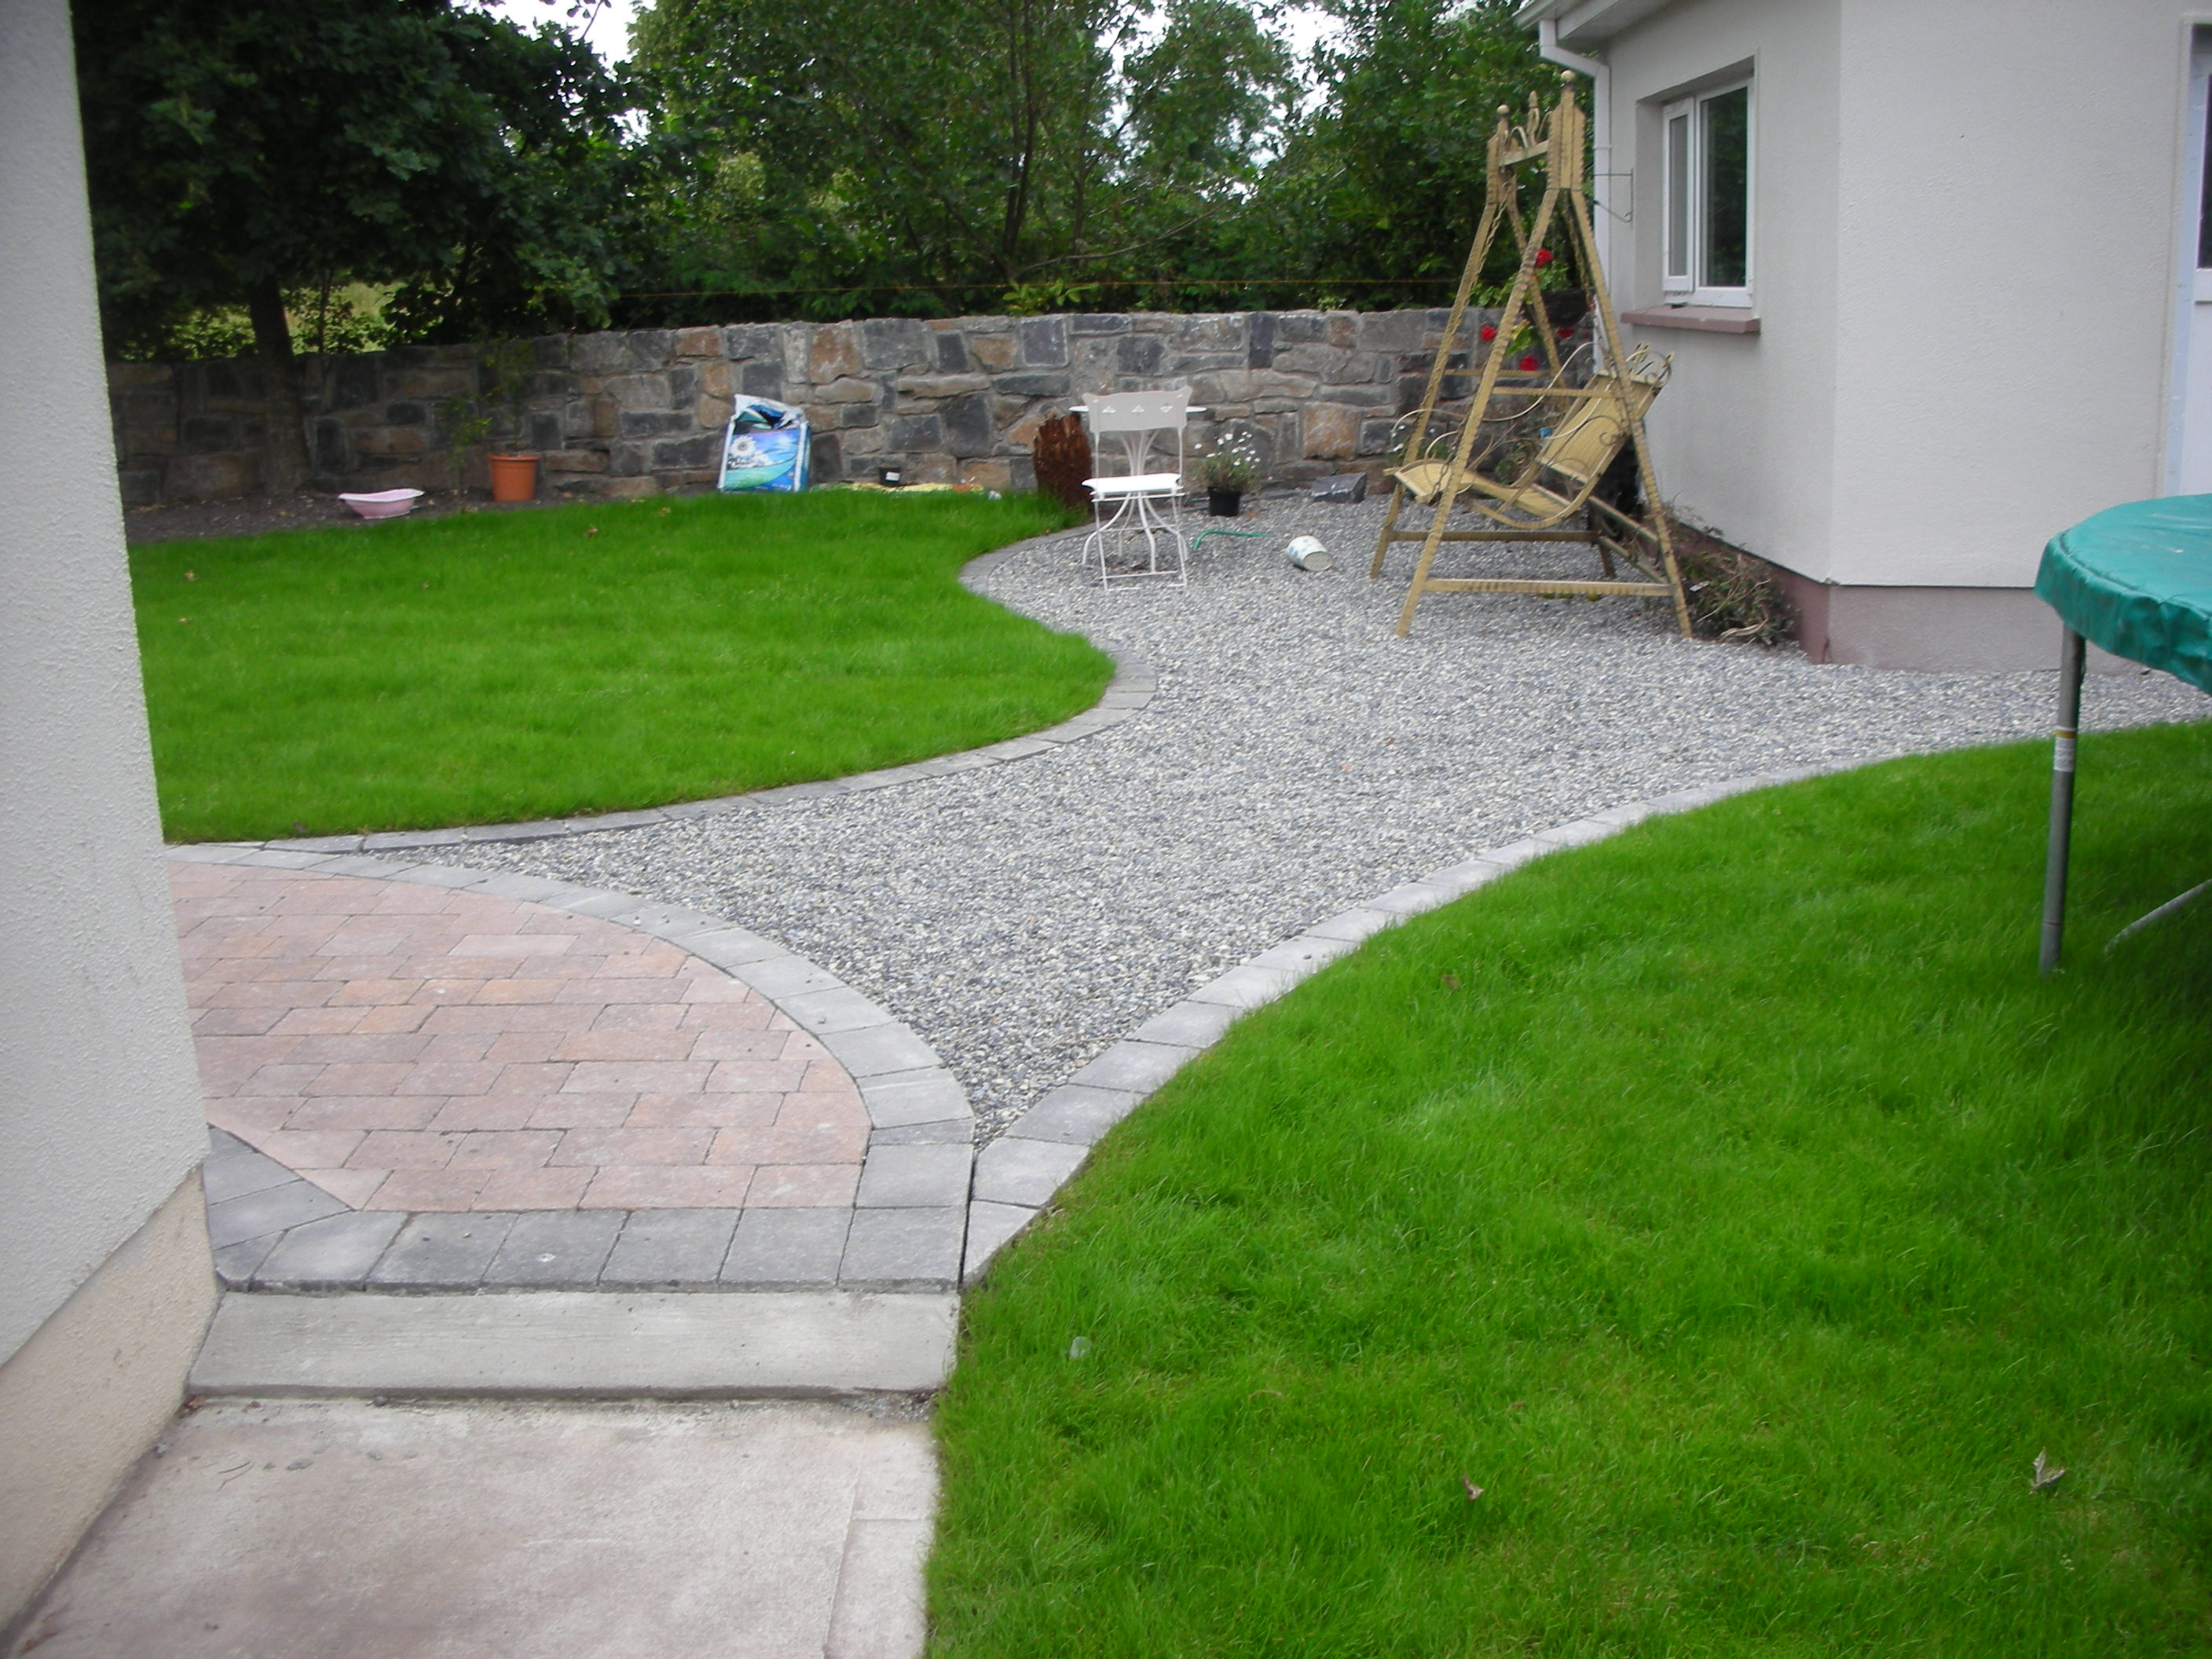 Paving & Roll out lawn with Limestone & Sandstone  mix Stone Wall in background